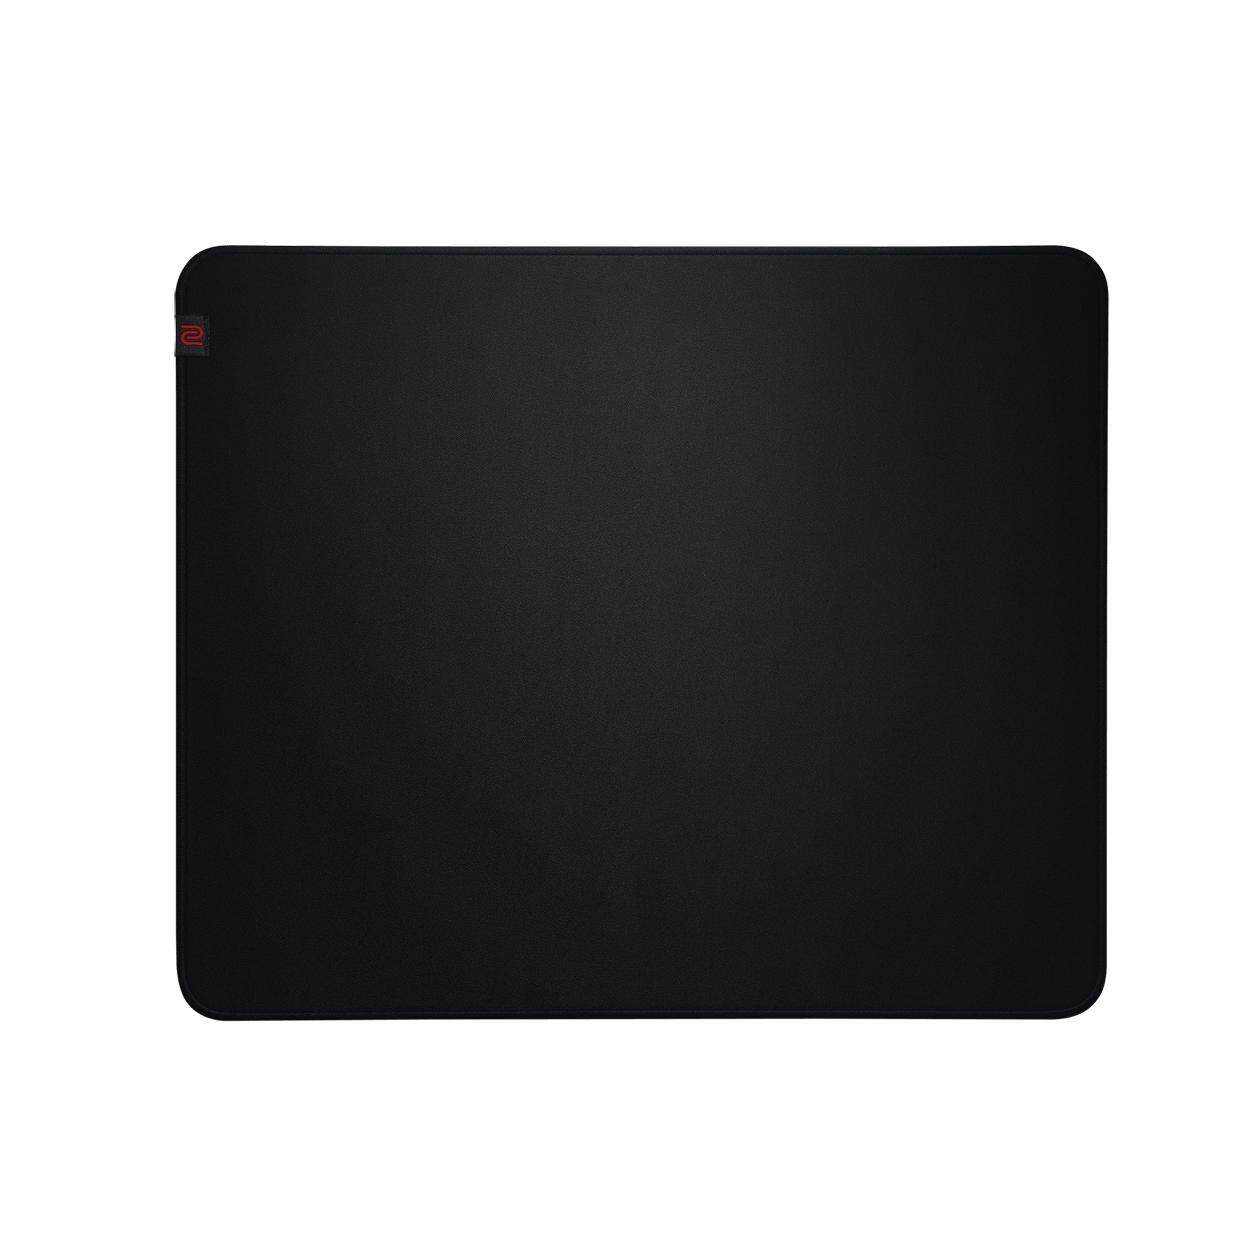 แผ่นรองเมาส์ Benq Zowie G-Sr Gaming Mousepad For E-Sport.